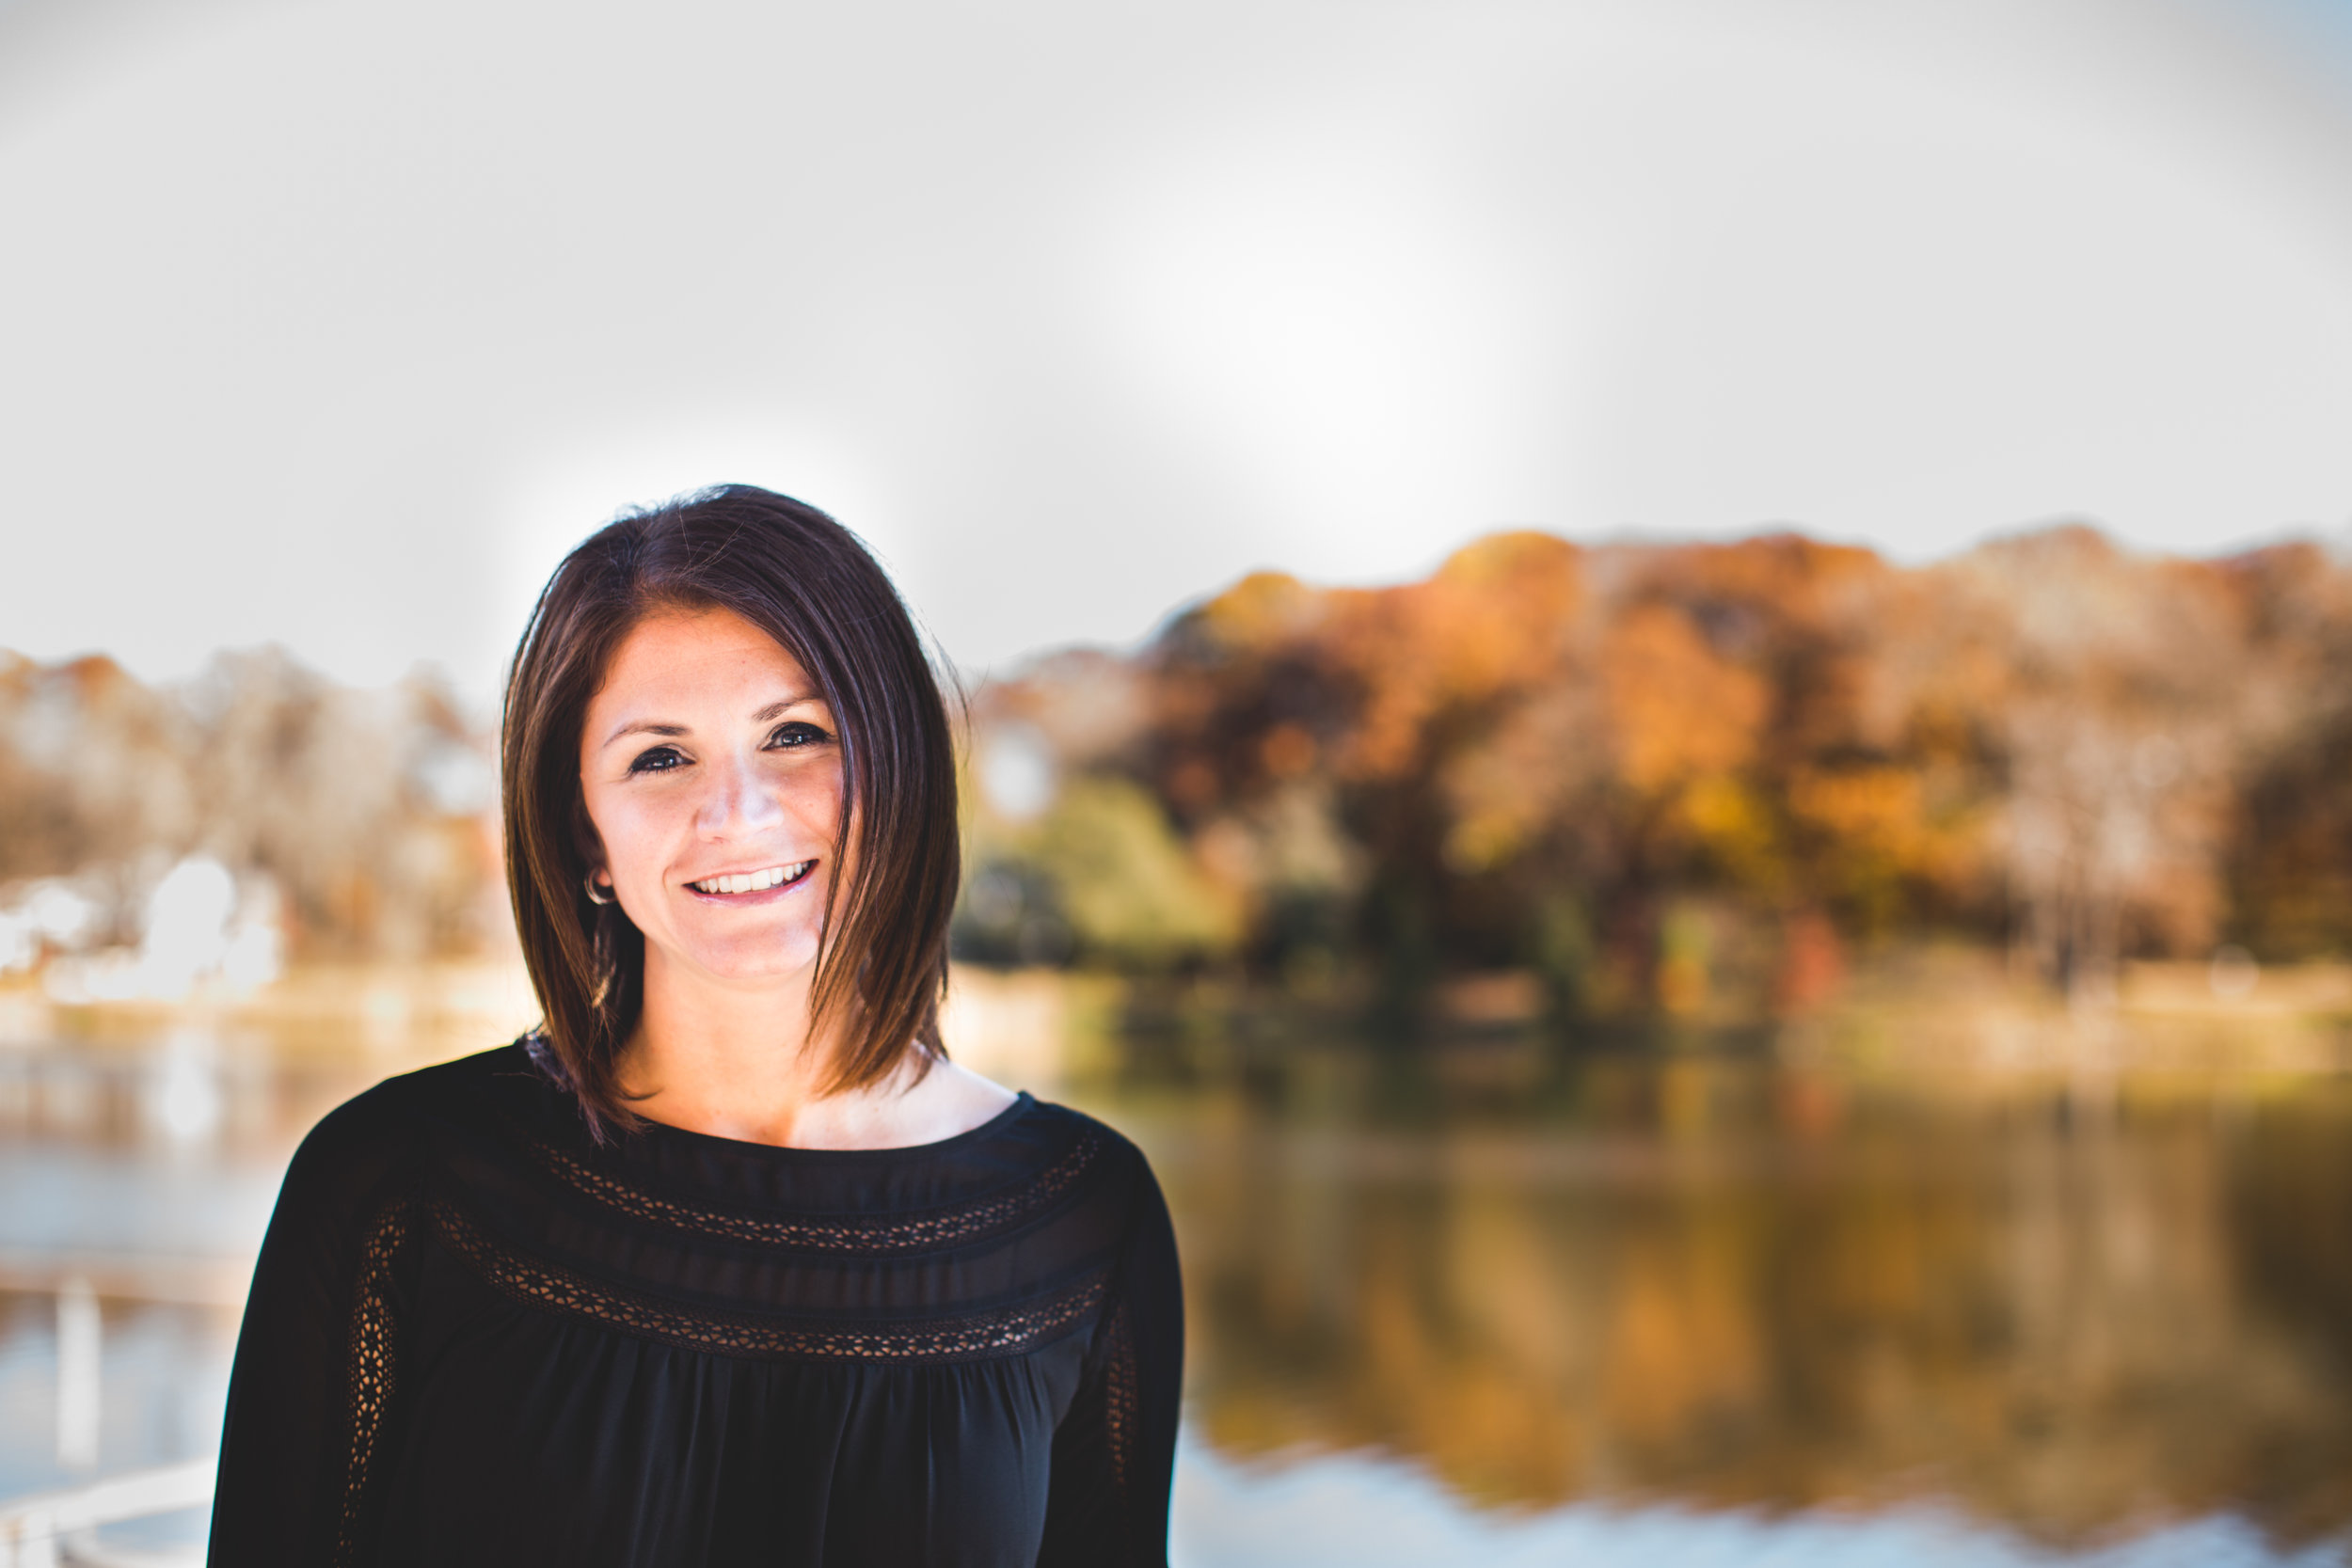 """Kimberly Laubinger - With a vast range of accounting and operations knowledge from nearly 20 years of experience in public accounting, as a controller and as a Chief Financial Officer, it is a given that Kim can handle your accounting needs. But she is also ready to take your company """"Beyond CPAs."""" What does that mean, exactly?Of course you expect that Kim and her team can deliver your tax returns and have your numbers packaged up in for you in a complete financial statement, but she can also assist you in your long-term financial planning to ensure that your company reaches its maximum potential - both in finance and operations.After graduating from Augustana College (Go Augie!), Kim immediately dove into her financial career where she met a nice fellow named Jim Laubinger. They began working together on client projects which happily led to working together on life projects. After much discussion and excitement,Laubinger & Associates, LLC became an organic part of their journey. After time with family and friends, and cheering on her two boys at the baseball fields, Kim enjoys traveling, trying out new group exercise classes, cycling outdoors, and taking in live music."""